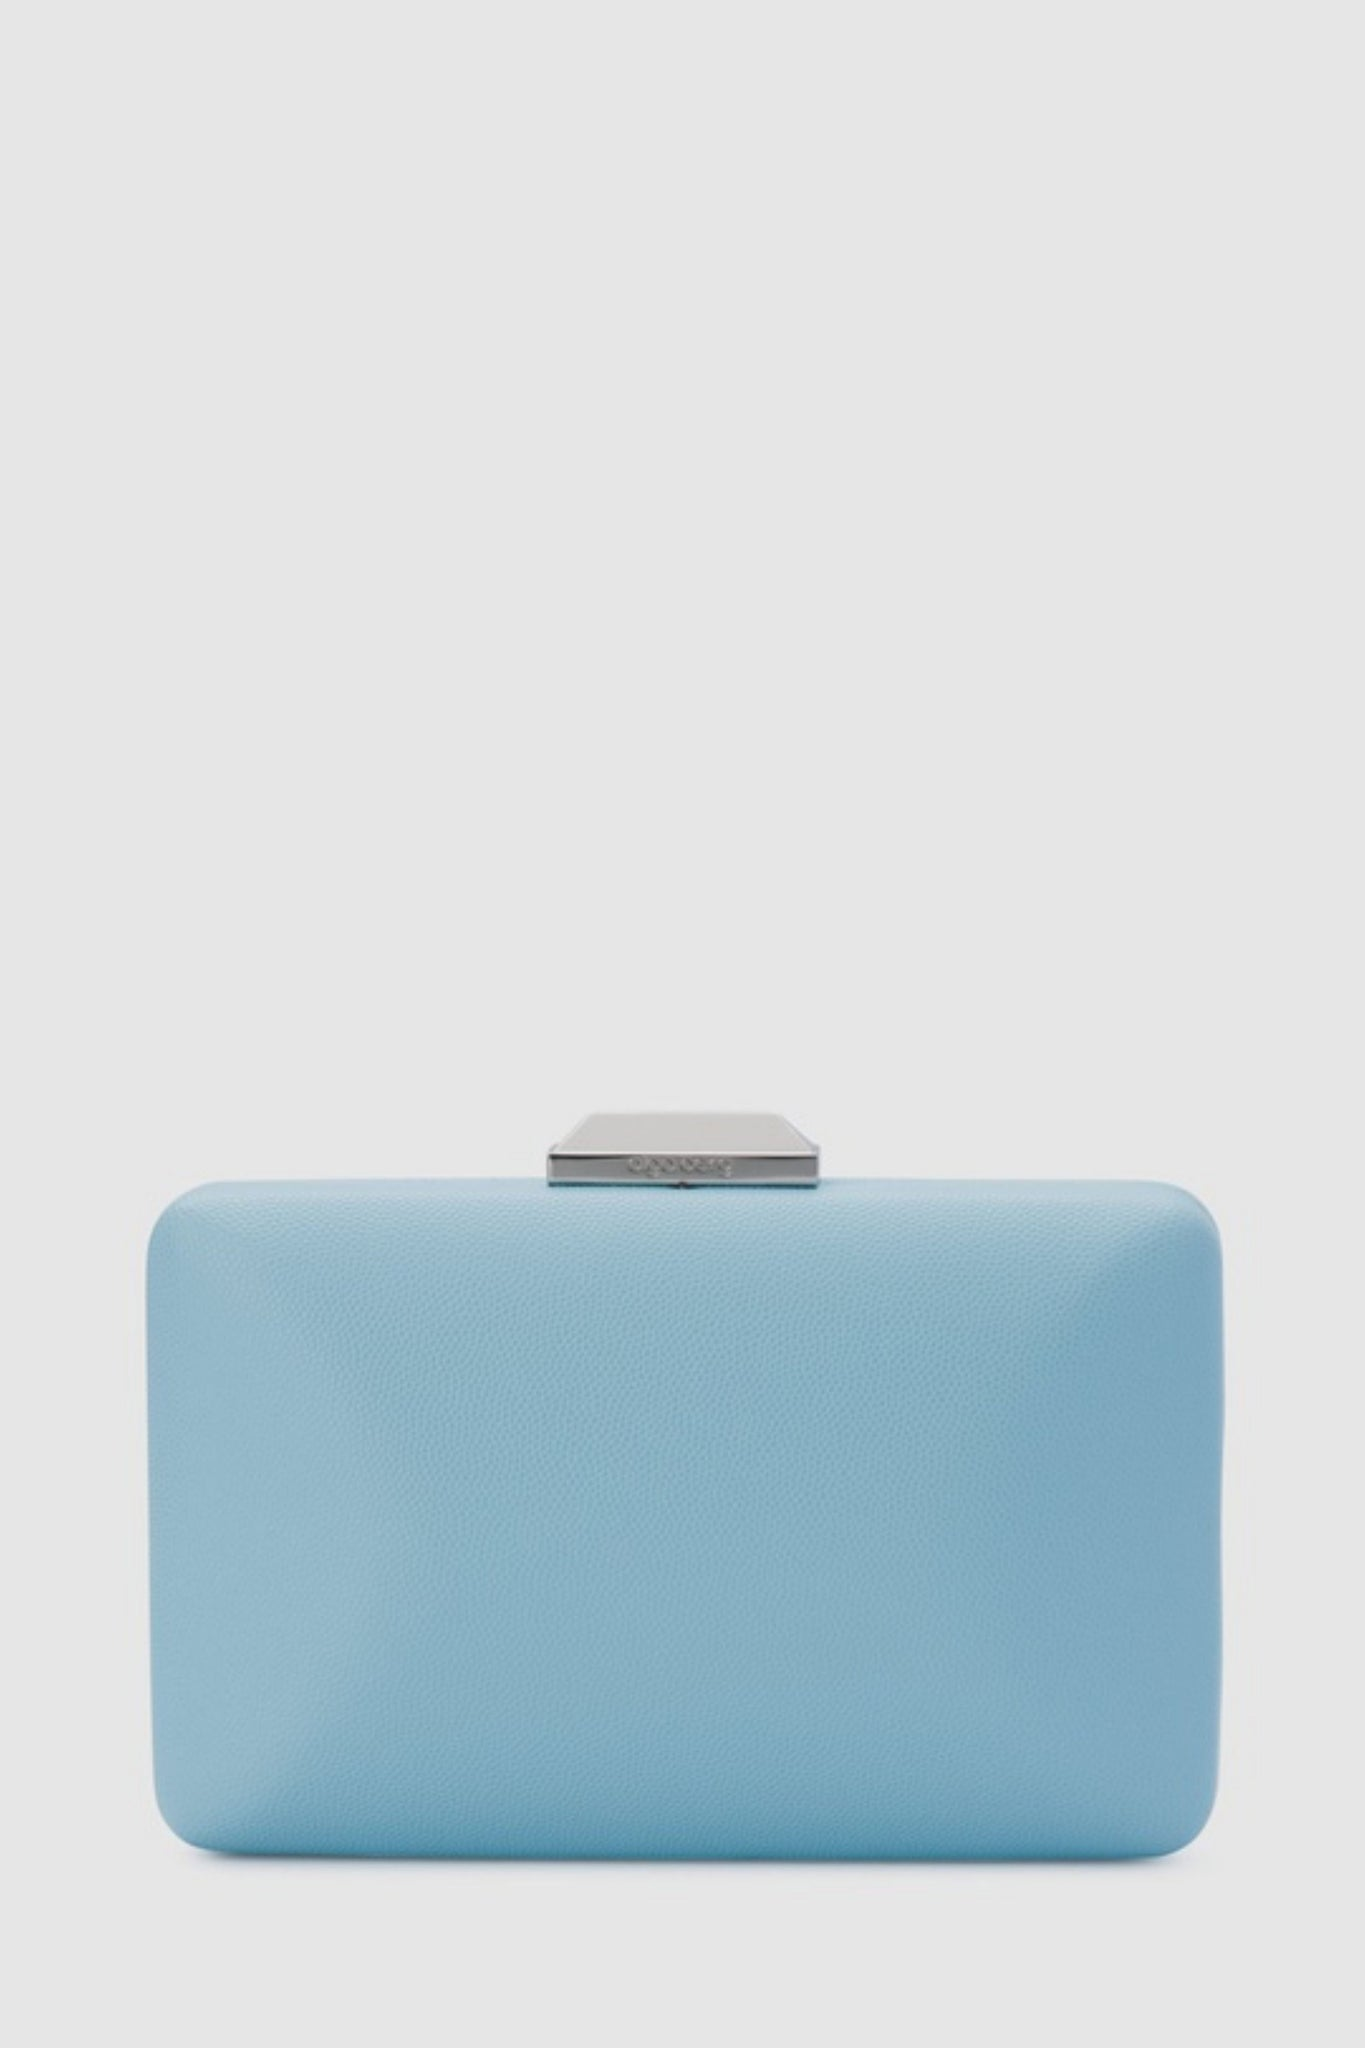 Buy Olga Berg Sonia Pebbled Textured Clutch in Blue. Light Blue Clutches online Australia.